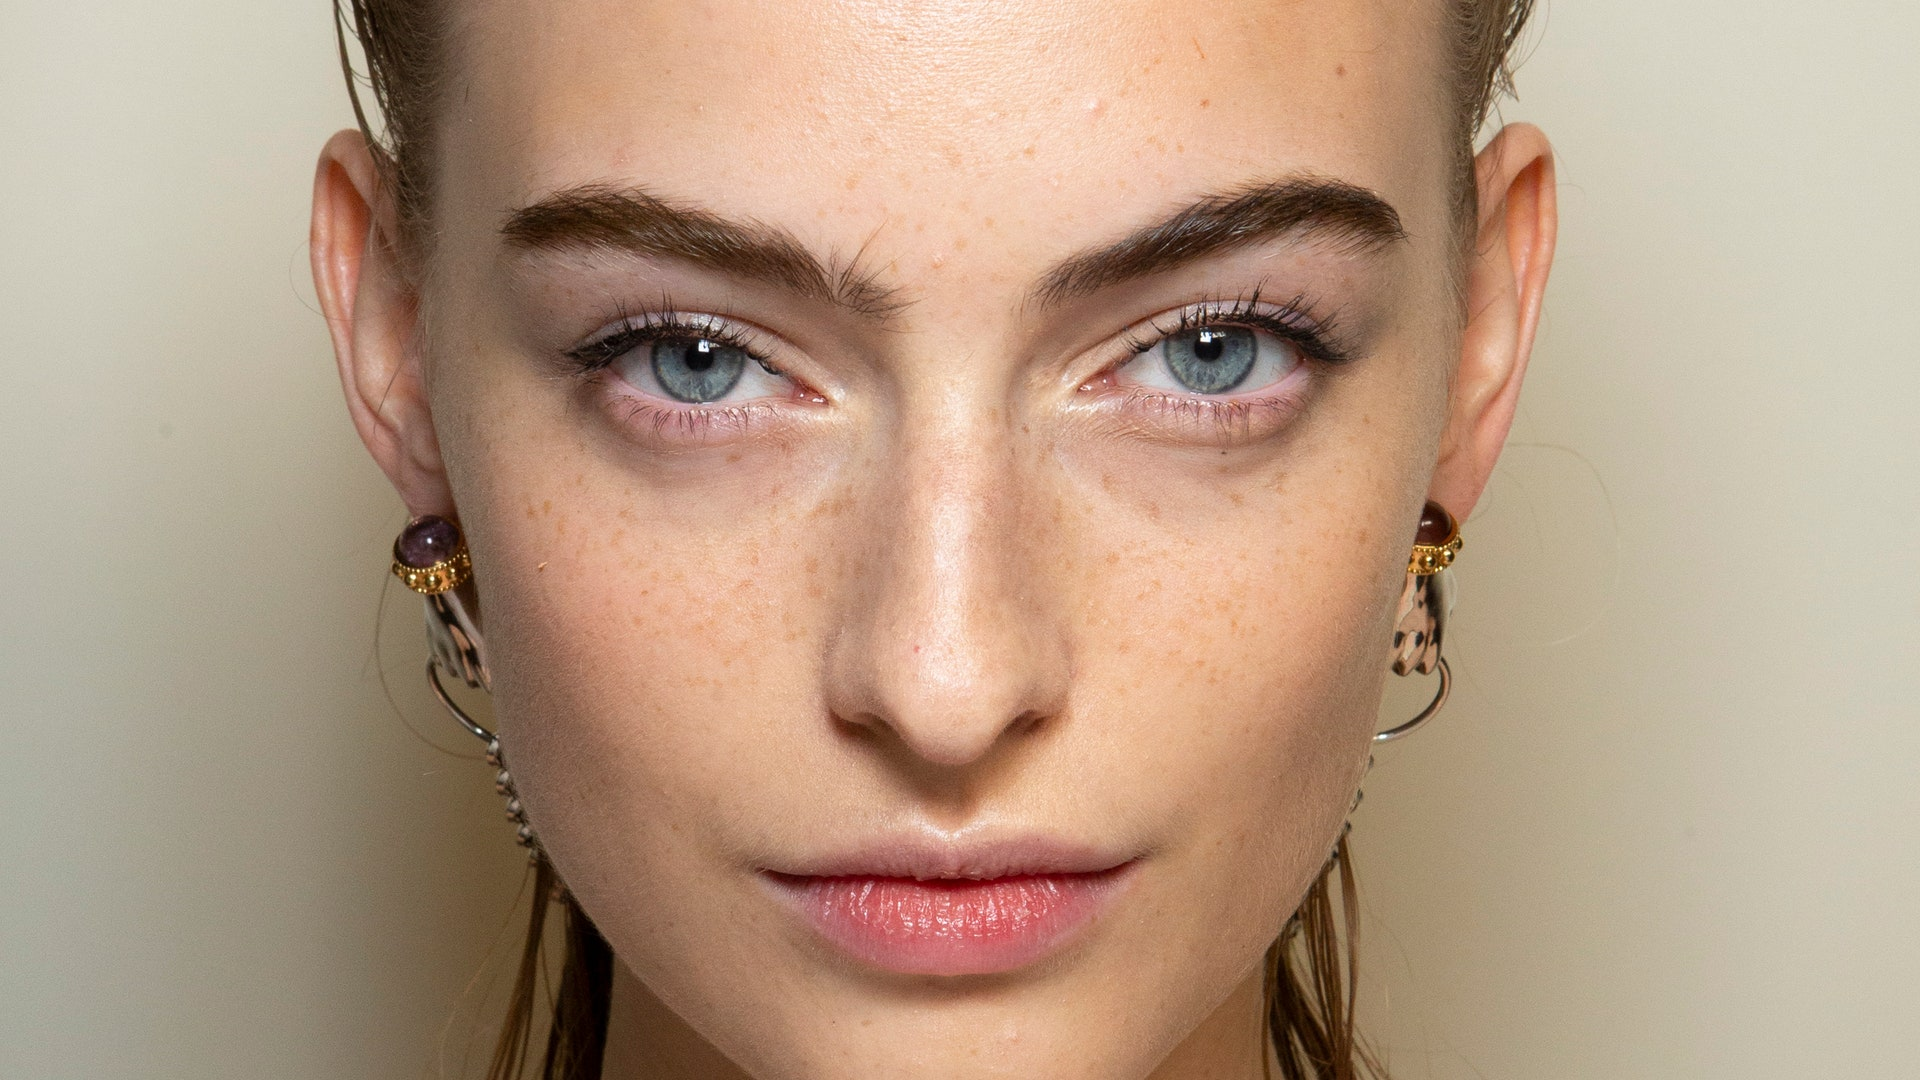 How to put mascara: 5 surefire methods to apply it